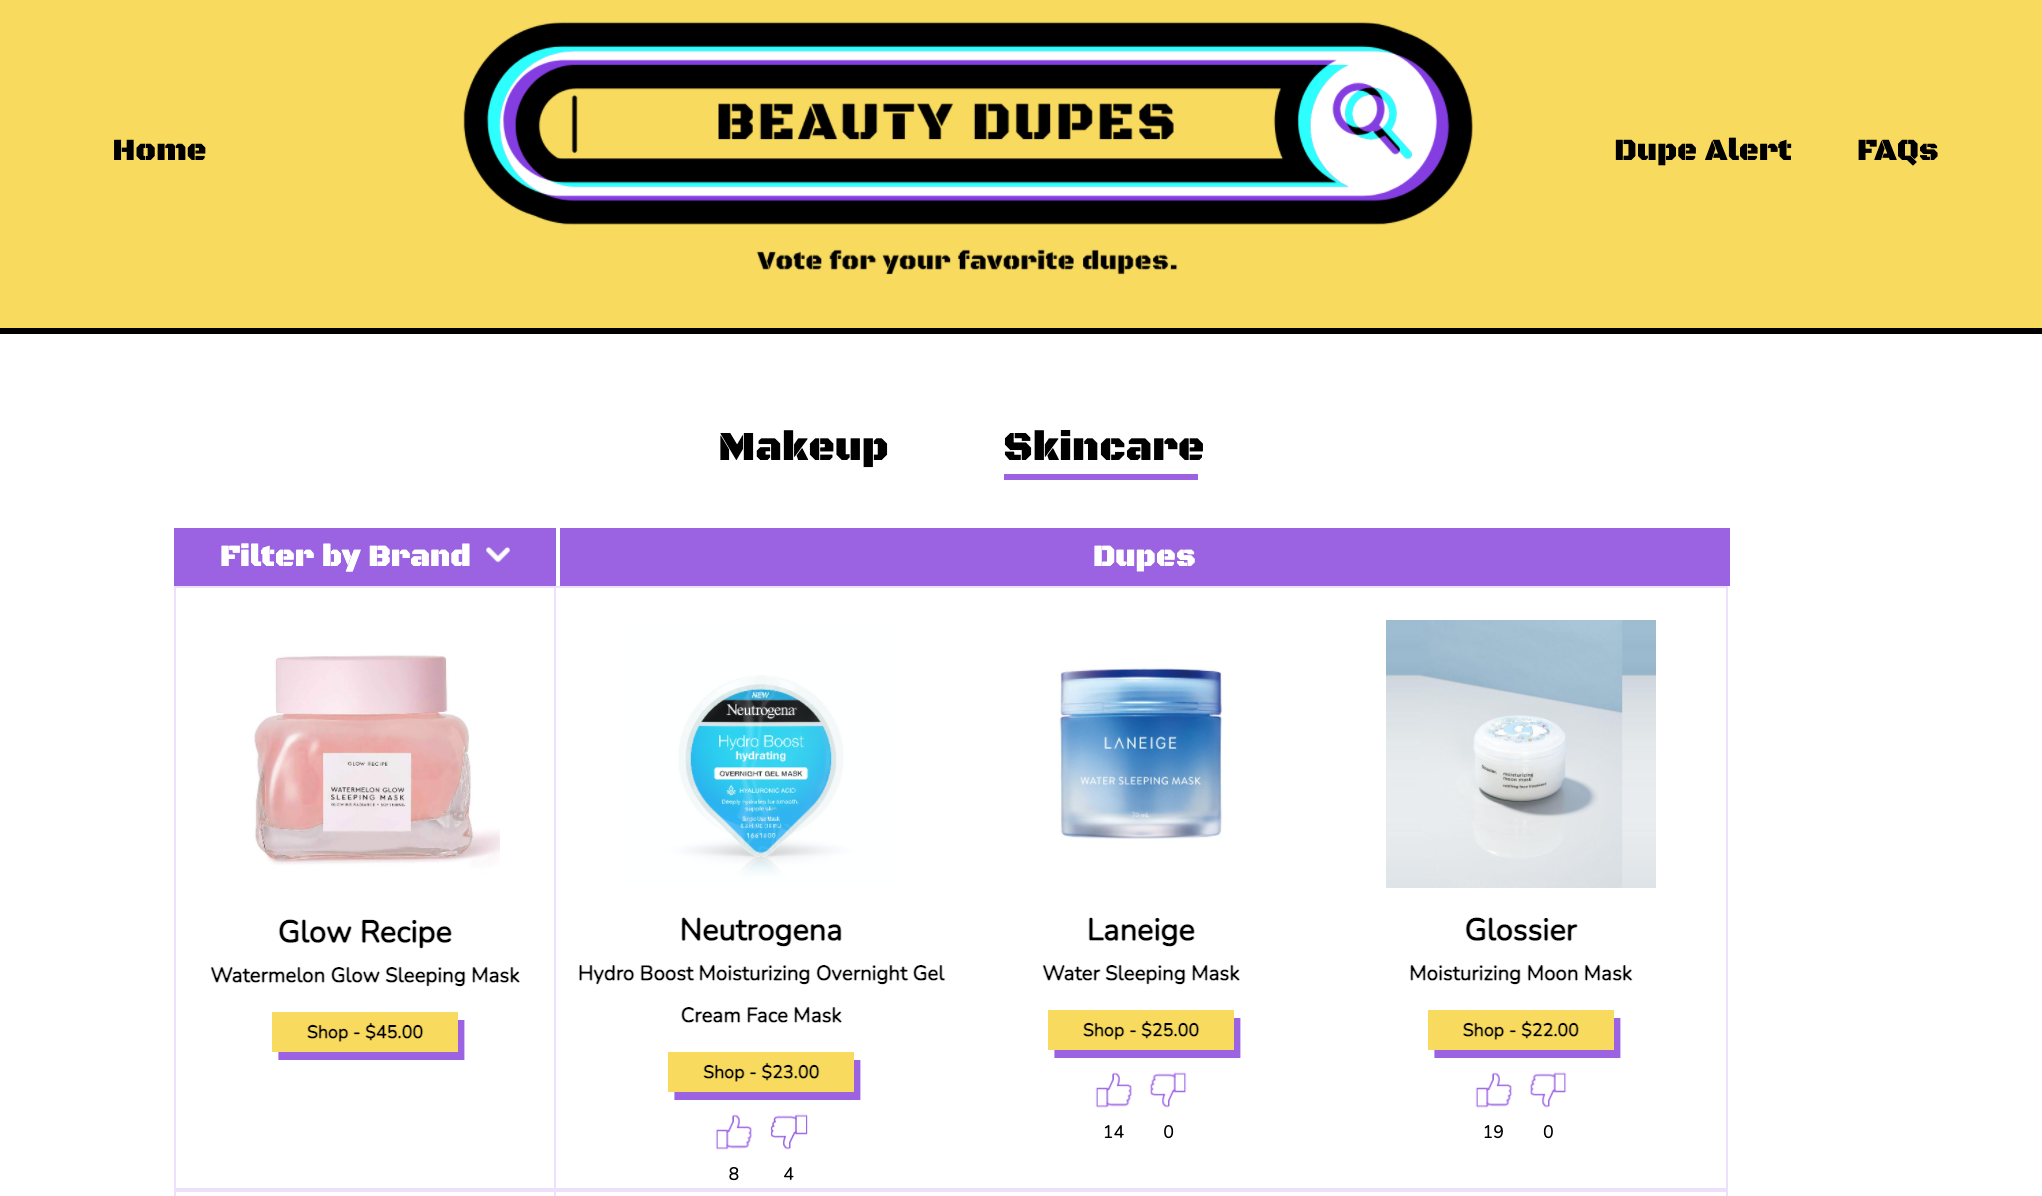 Find more beauty dupes at beautydupes.xyz!